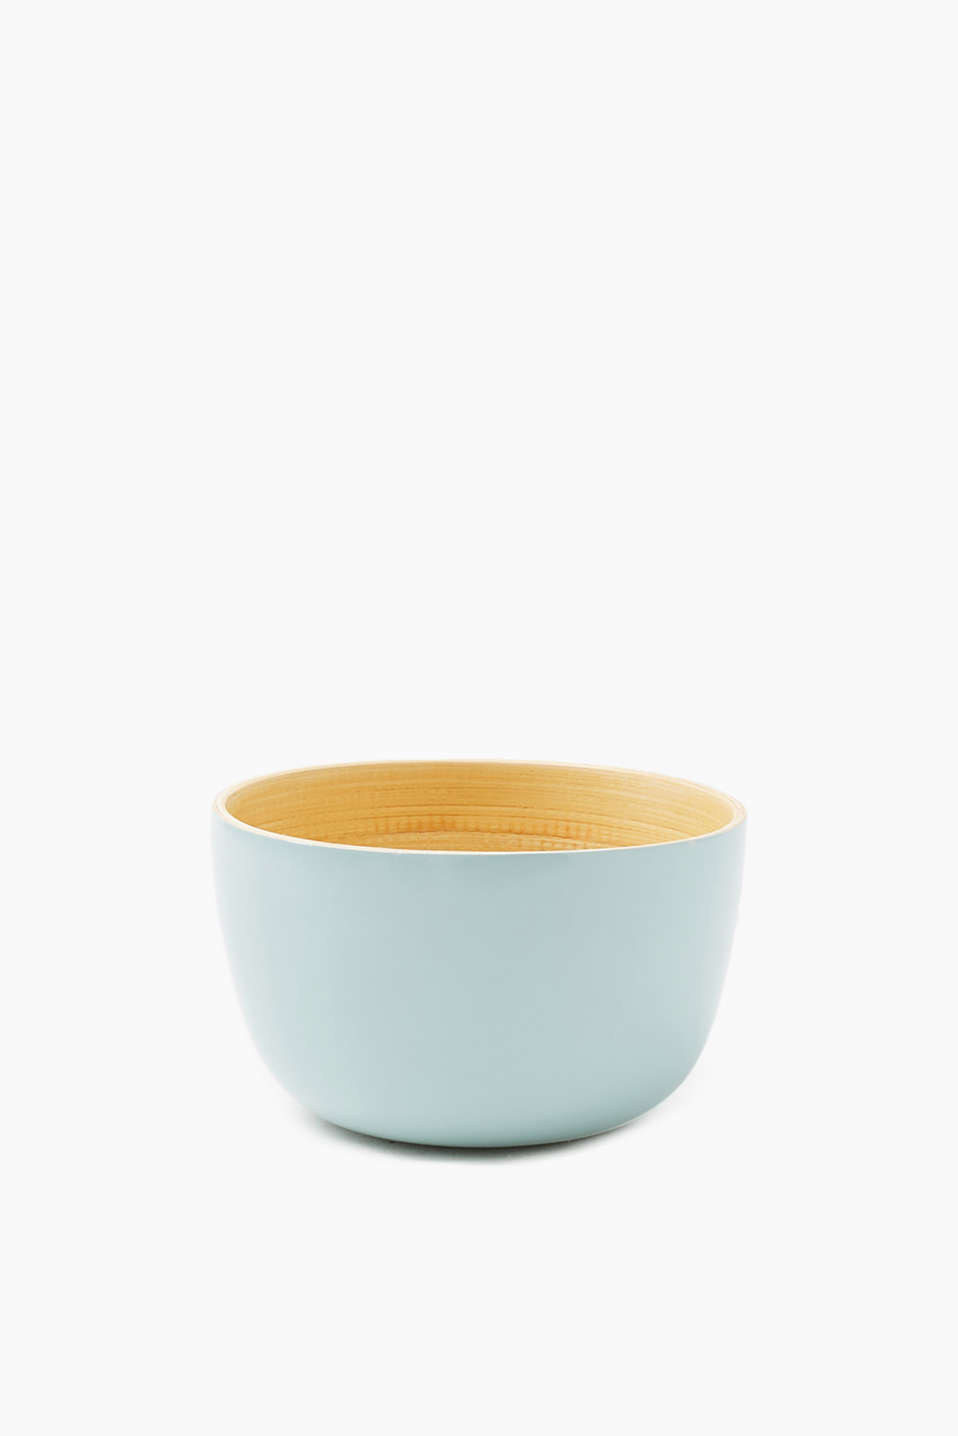 Esprit - Wooden bowl with a shiny coating